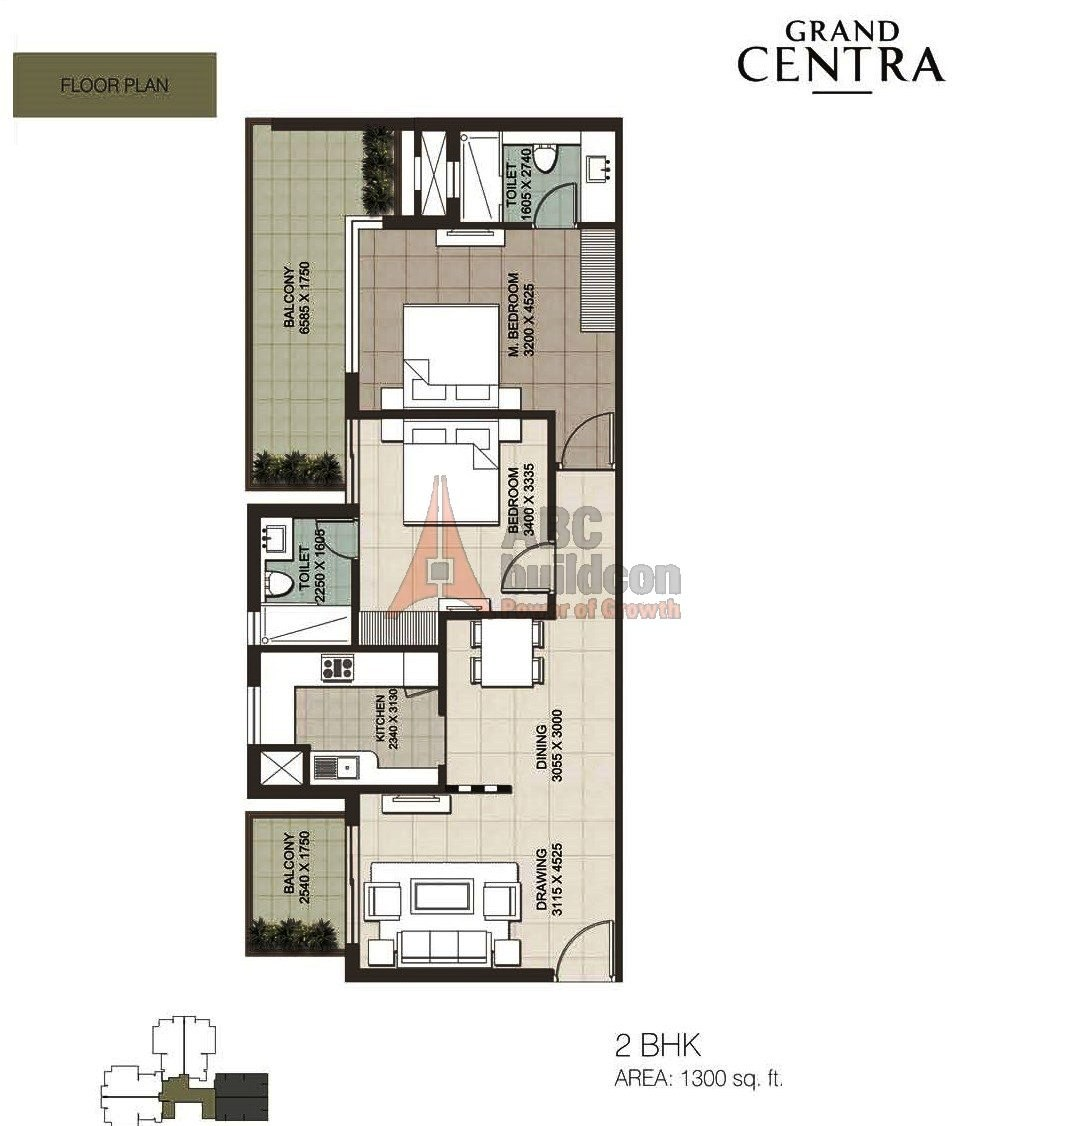 Ild Grand Centra Floor Plan